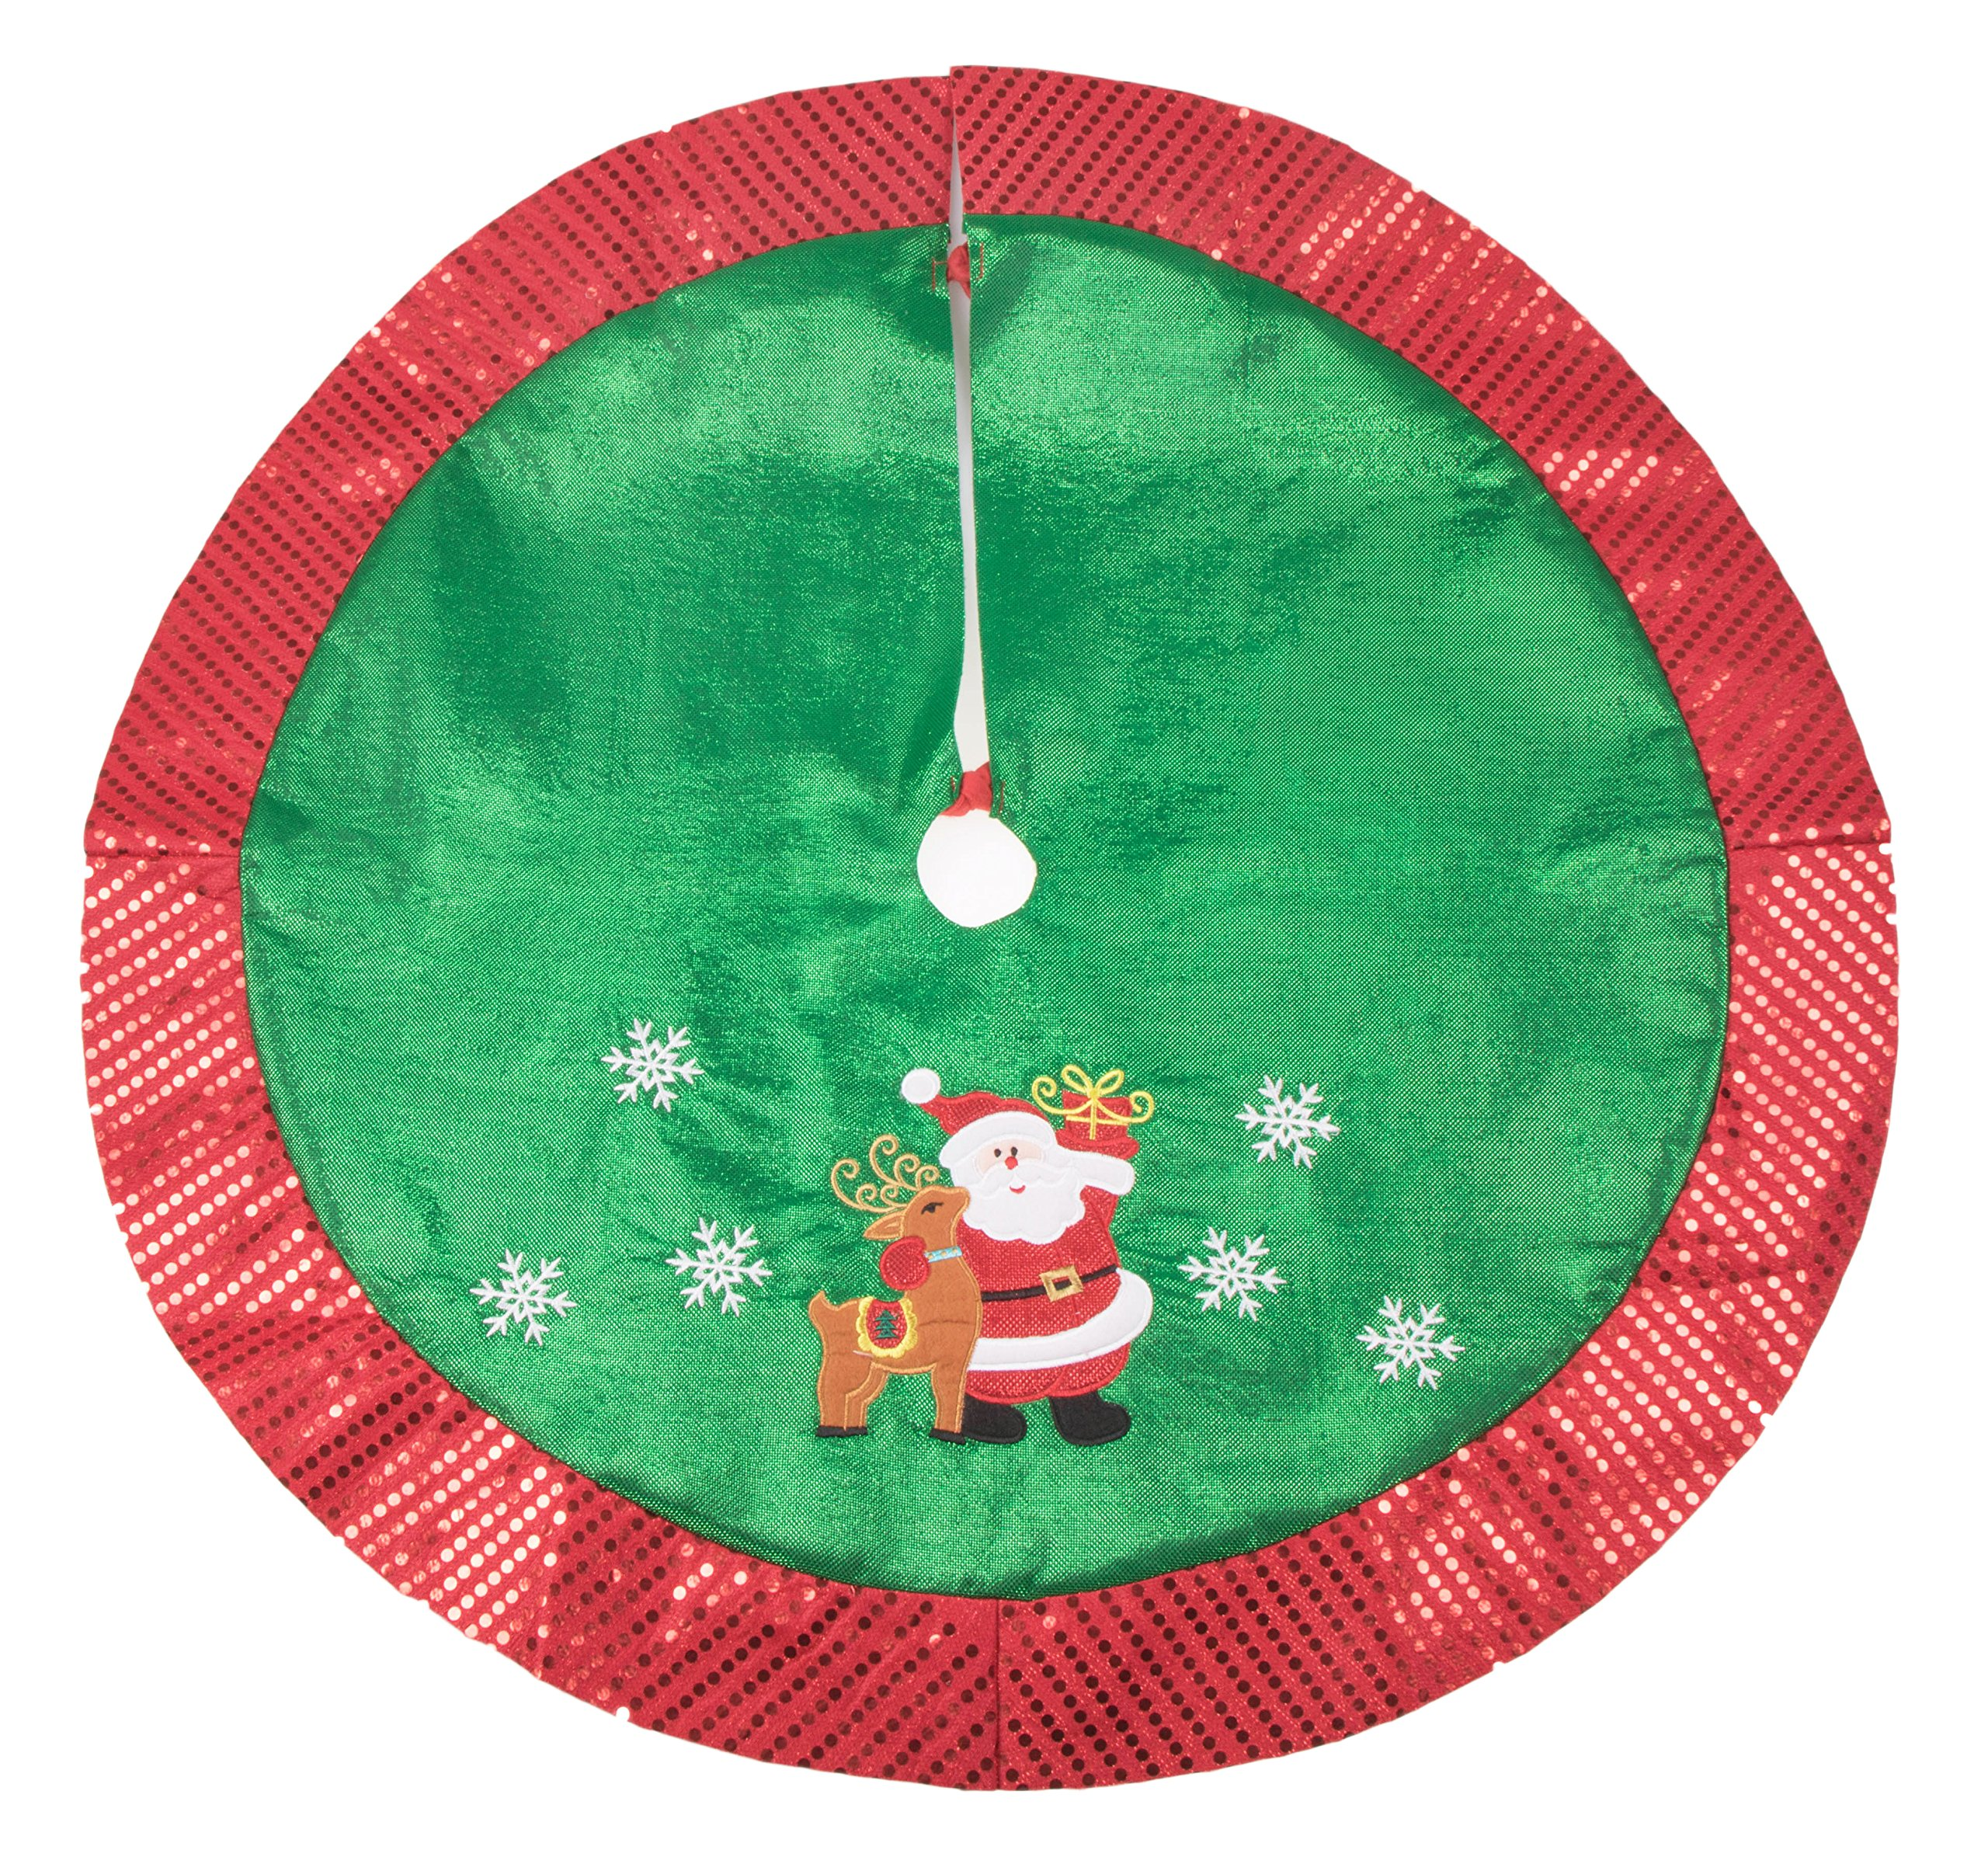 Red and Green Santa with Rudolph Christmas Tree Skirt by Clever Creations   Floor Cloth with Sequin Trim   Traditional Classic Festive Holiday Decor   Catches Falling Needles and Sap   36'' Diameter